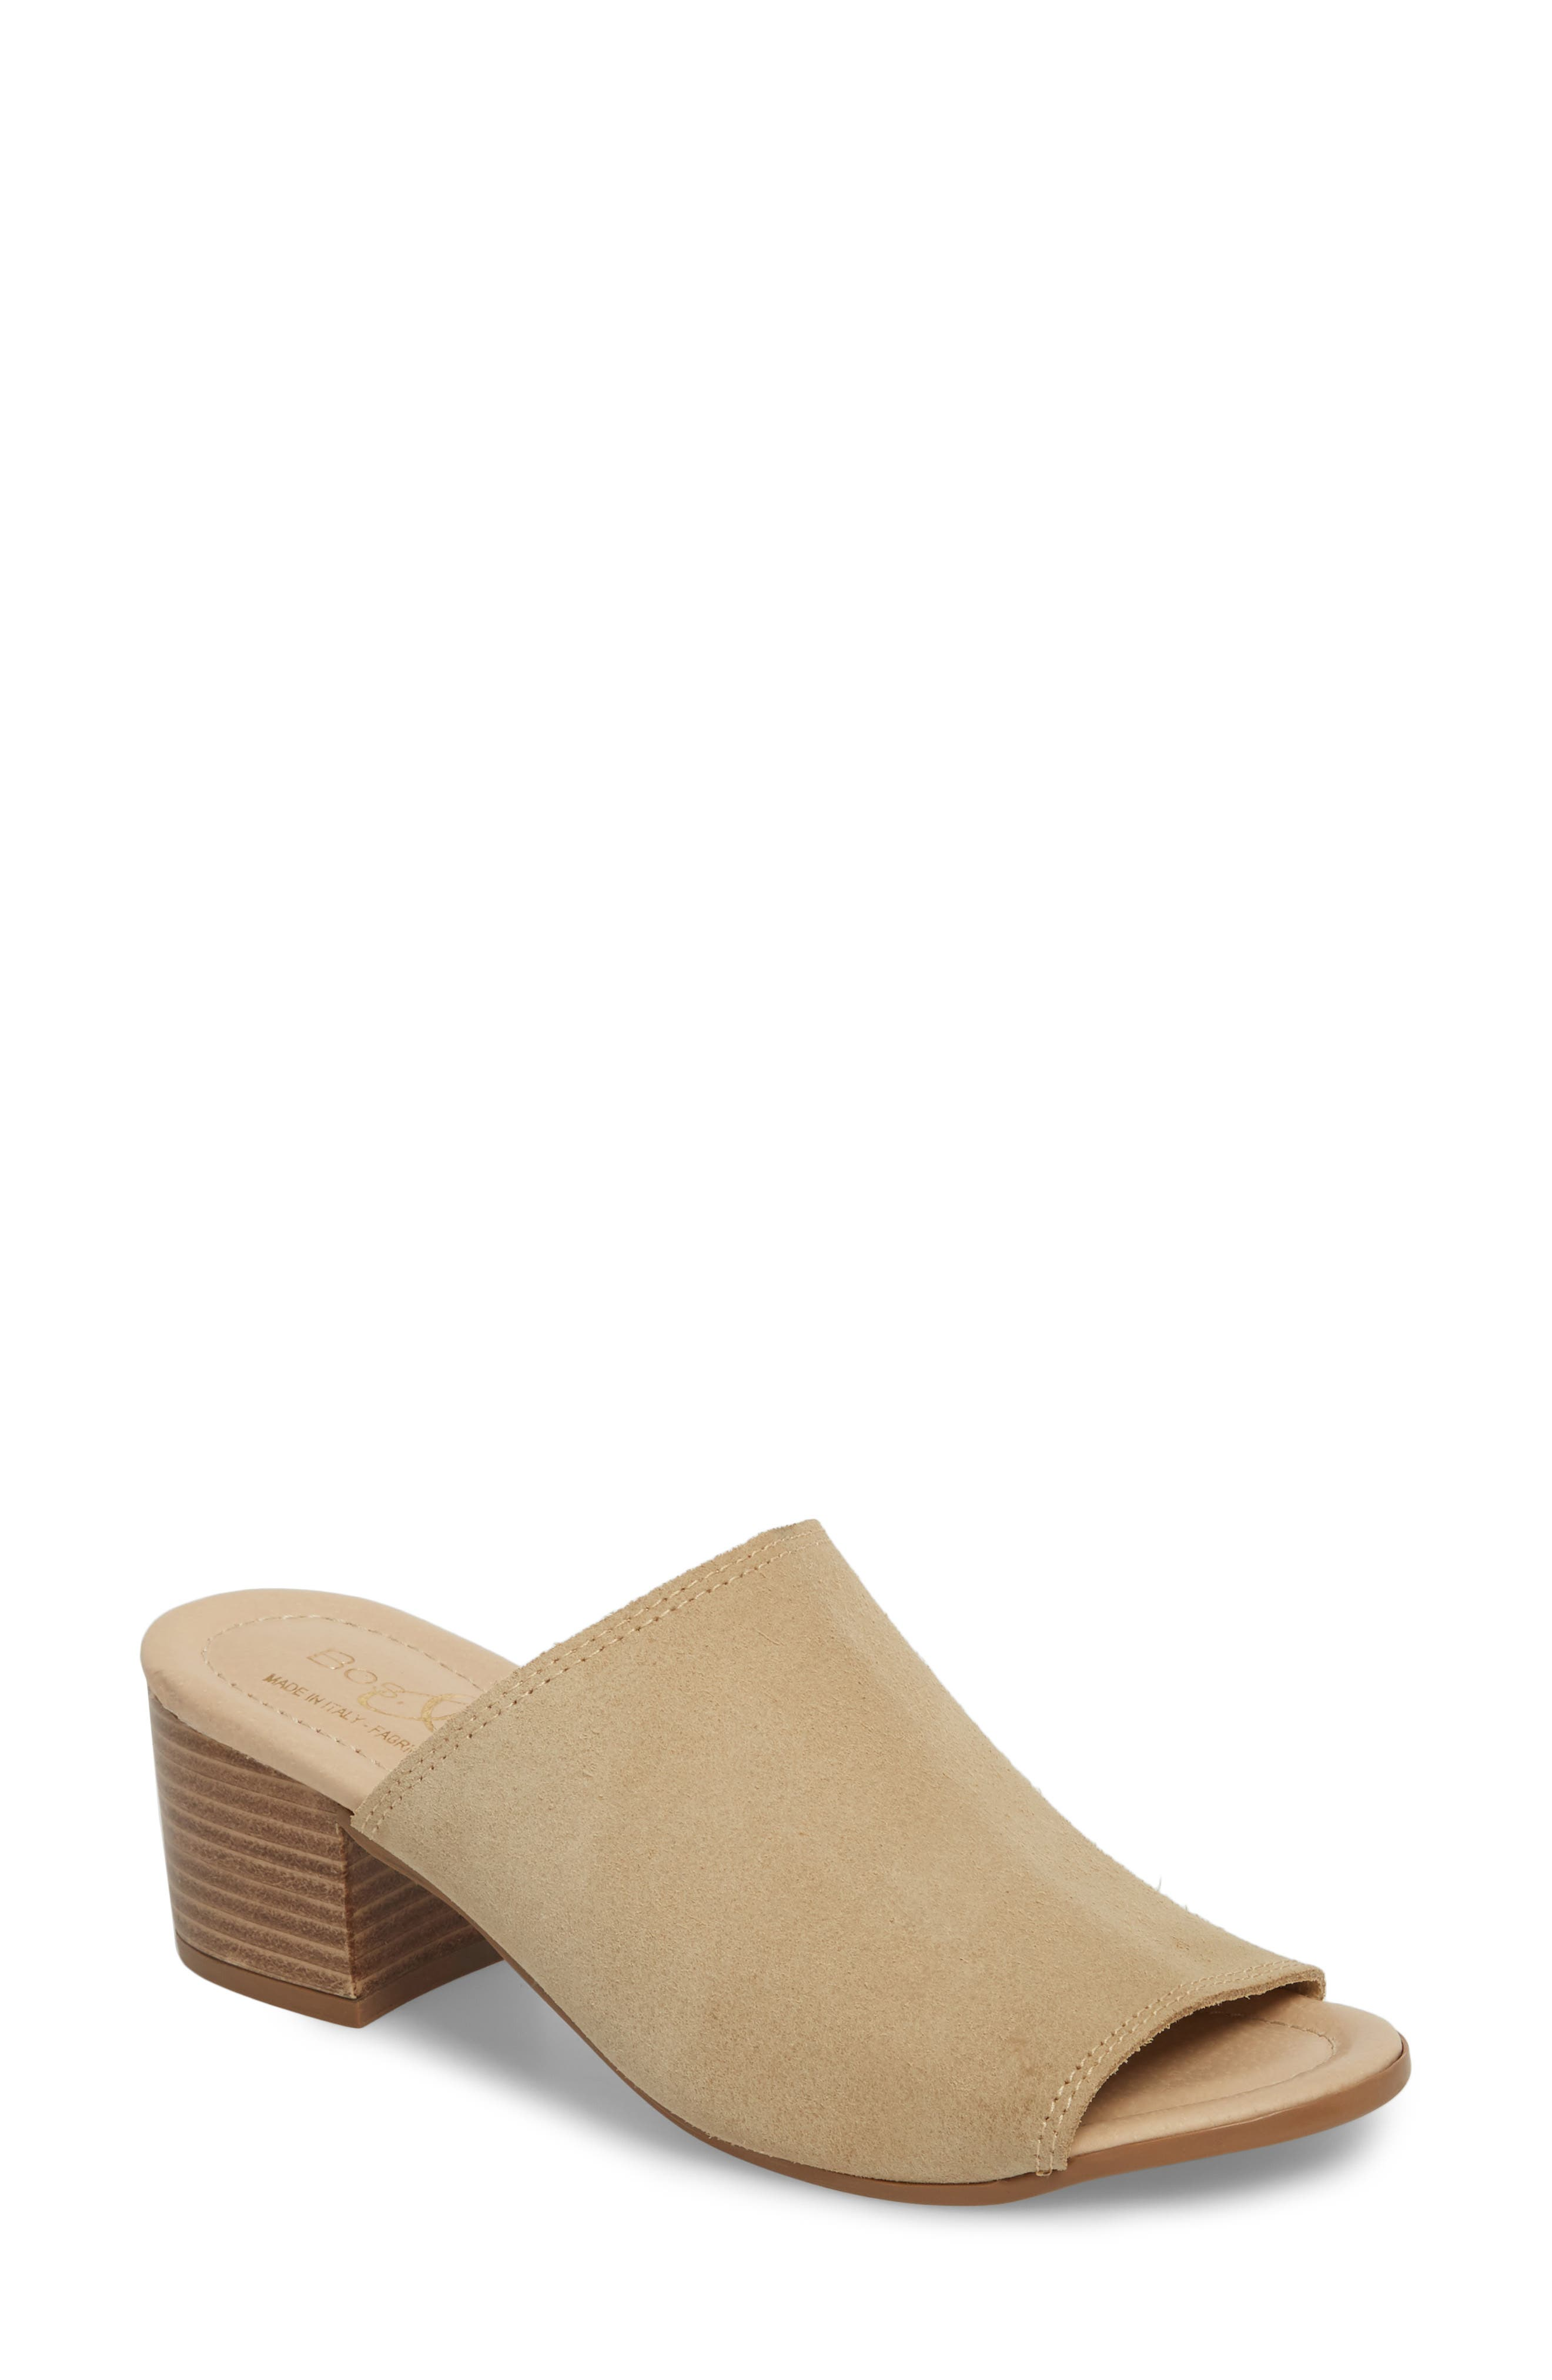 BOS. & CO., Fawn Mule, Main thumbnail 1, color, SAND CROSTA LEATHER